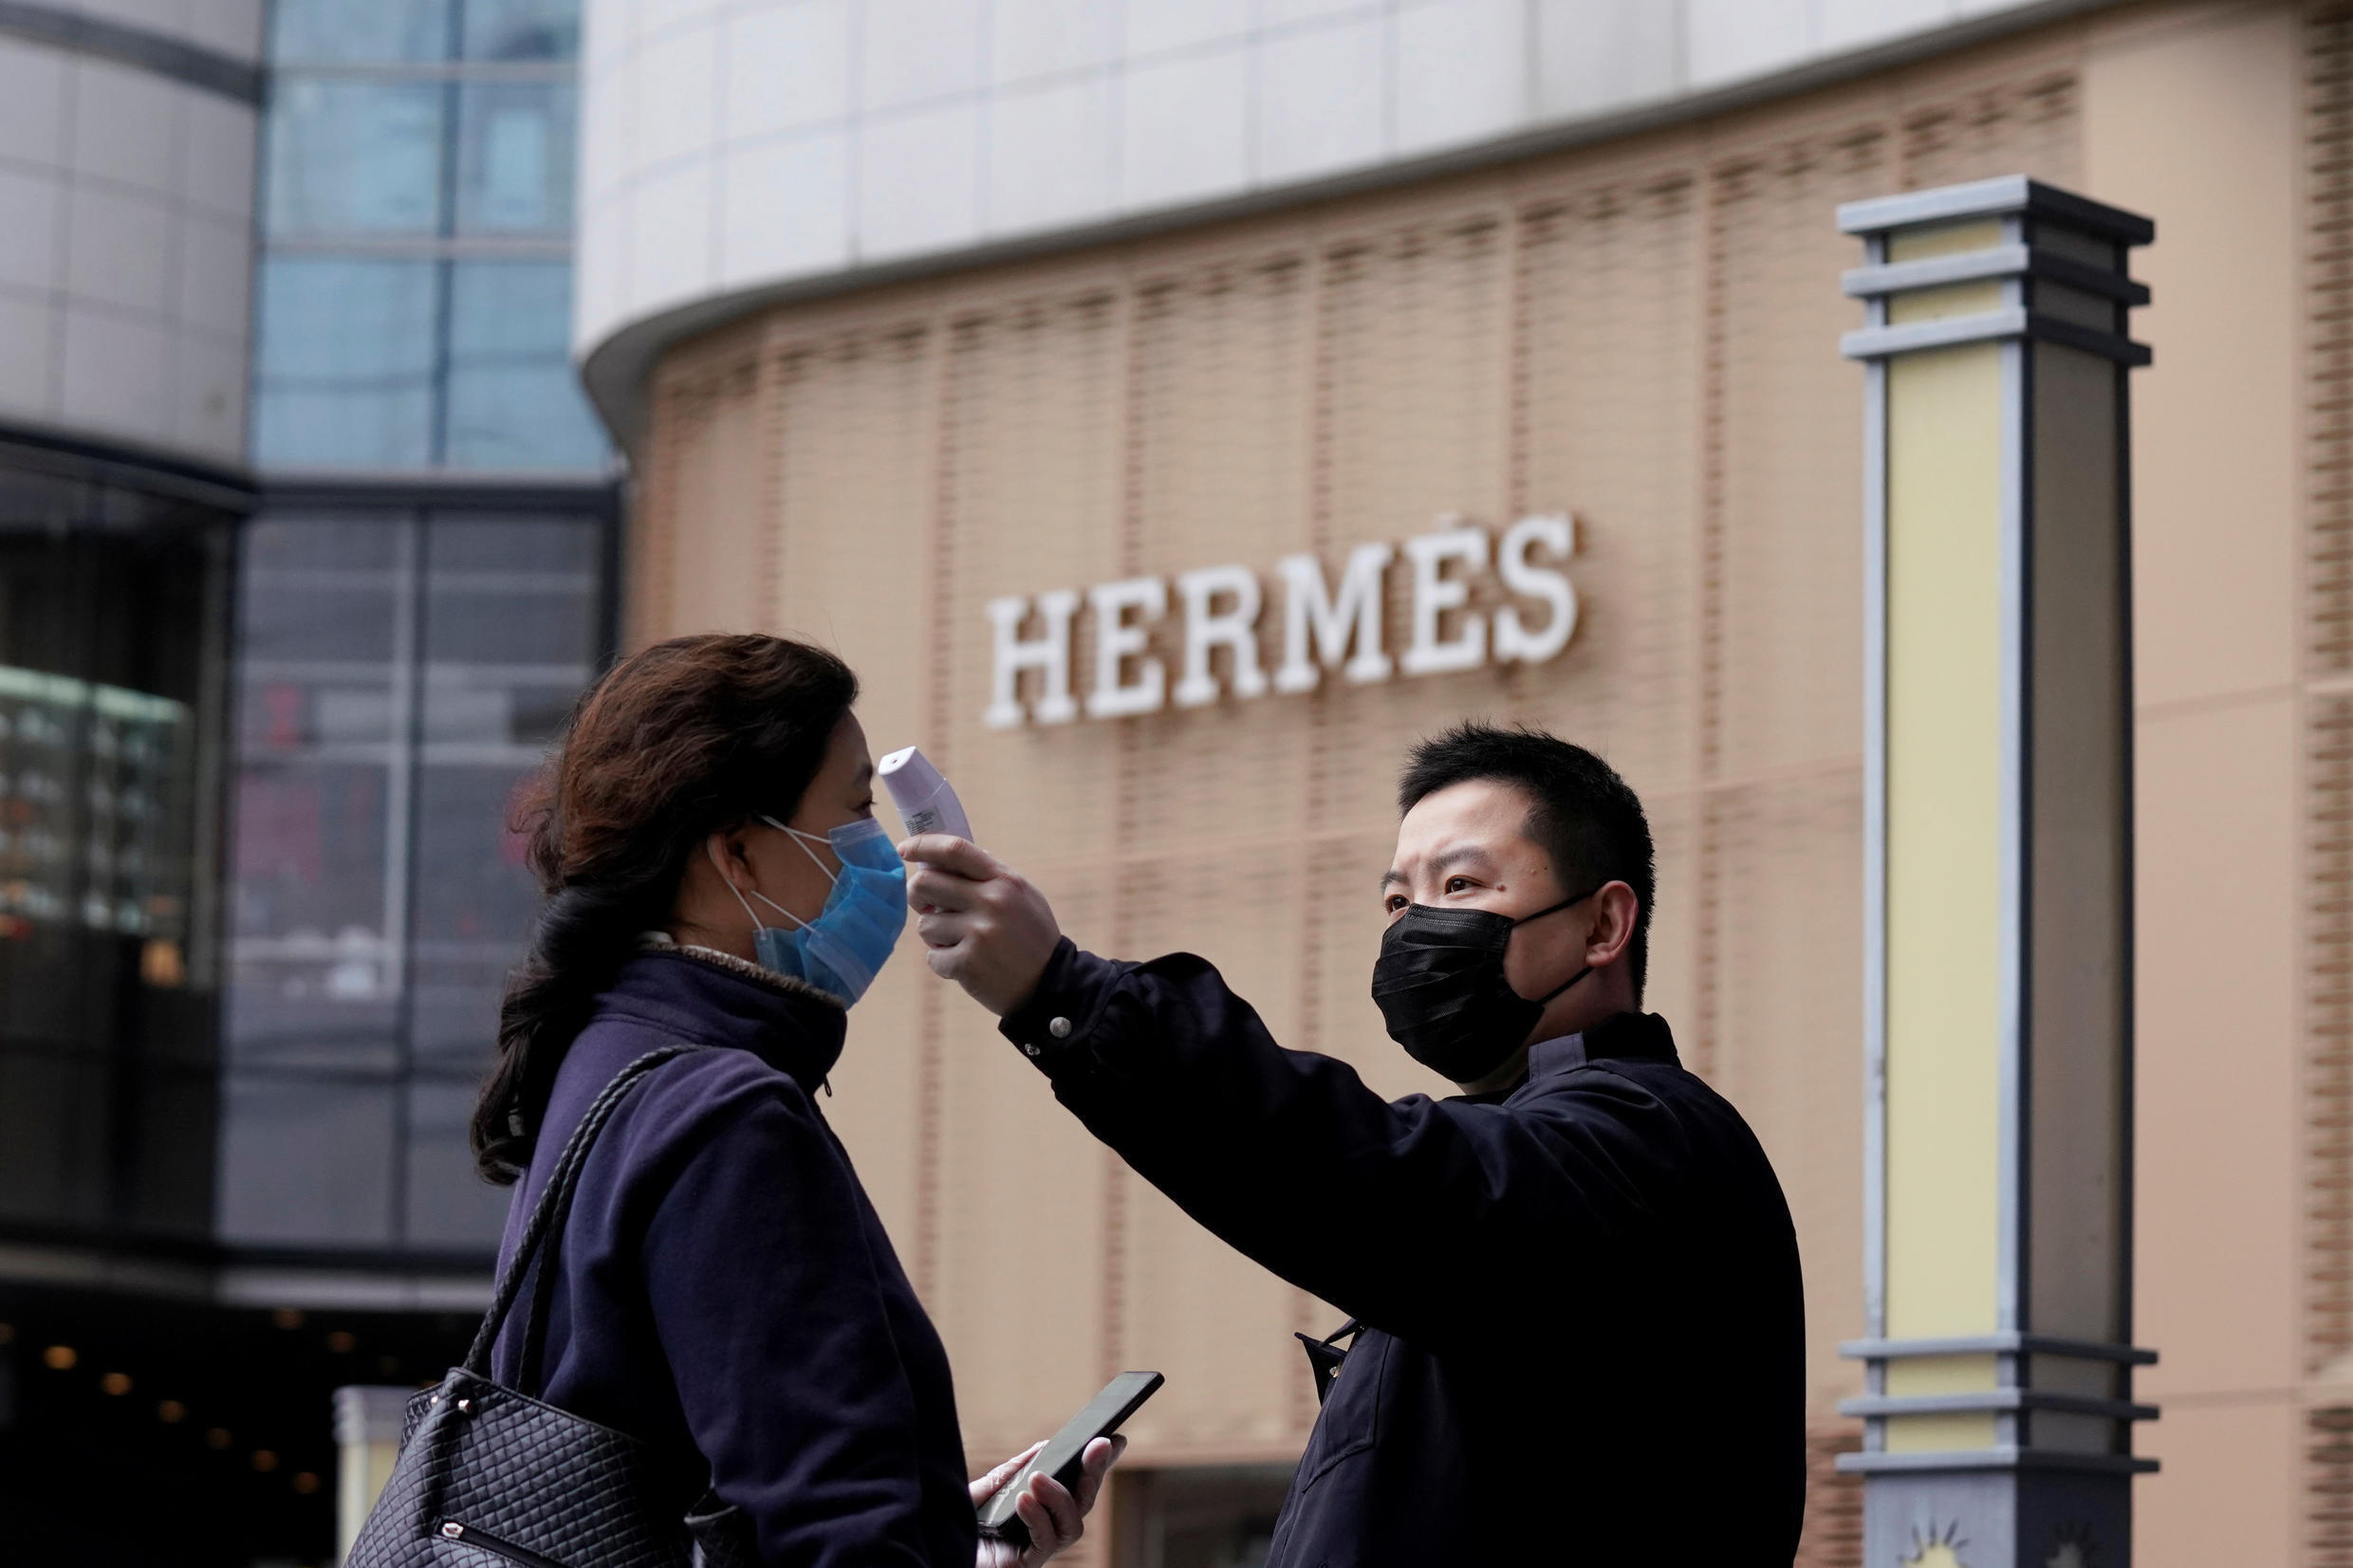 A management staff measures the body temperature of a woman entering a shopping mall near a Hermes store in Wuhan, Hubei province, the epicentre of China's coronavirus disease (COVID-19) outbreak, March 30, 2020.